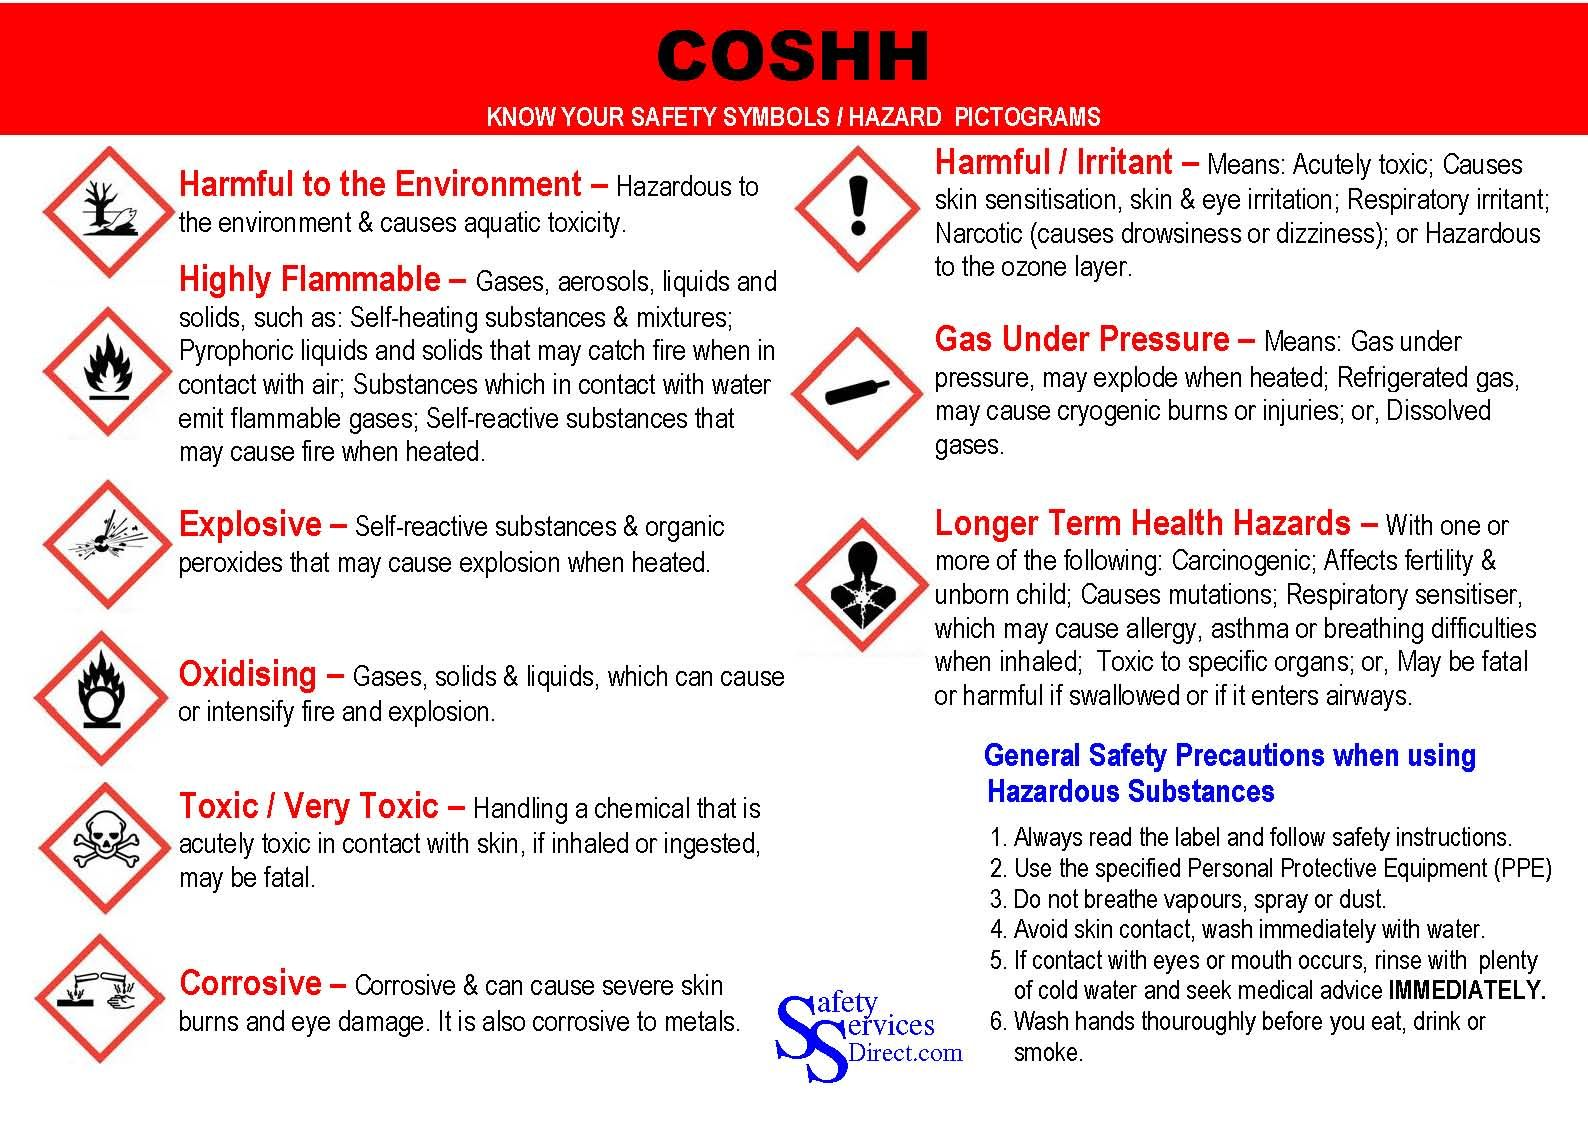 New Coshh Symbols X28 Hazard Pictogram X29 Poster P